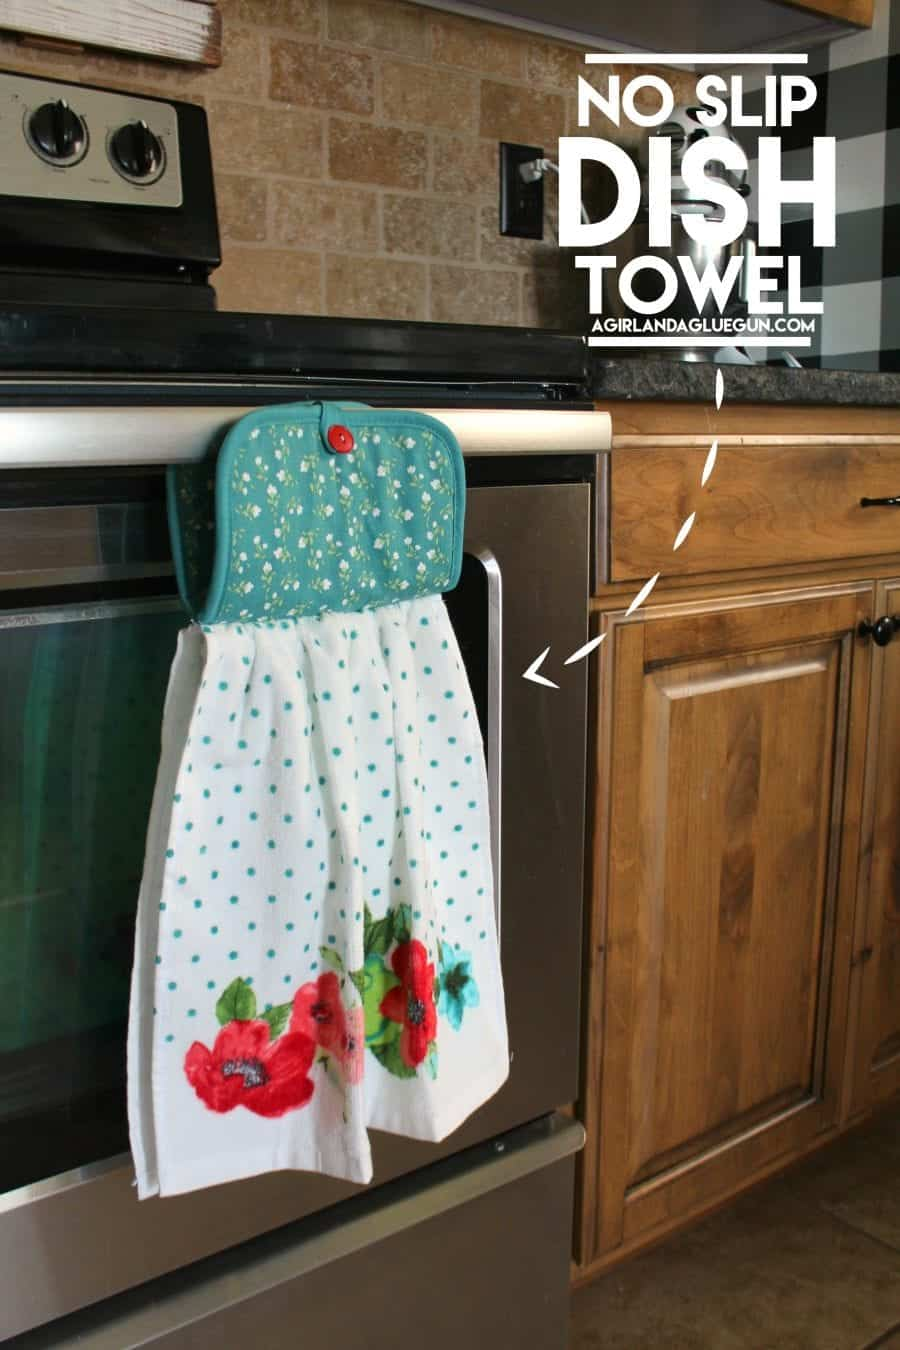 no-slip-dish-towel-a-girl-and-a-glue-gun